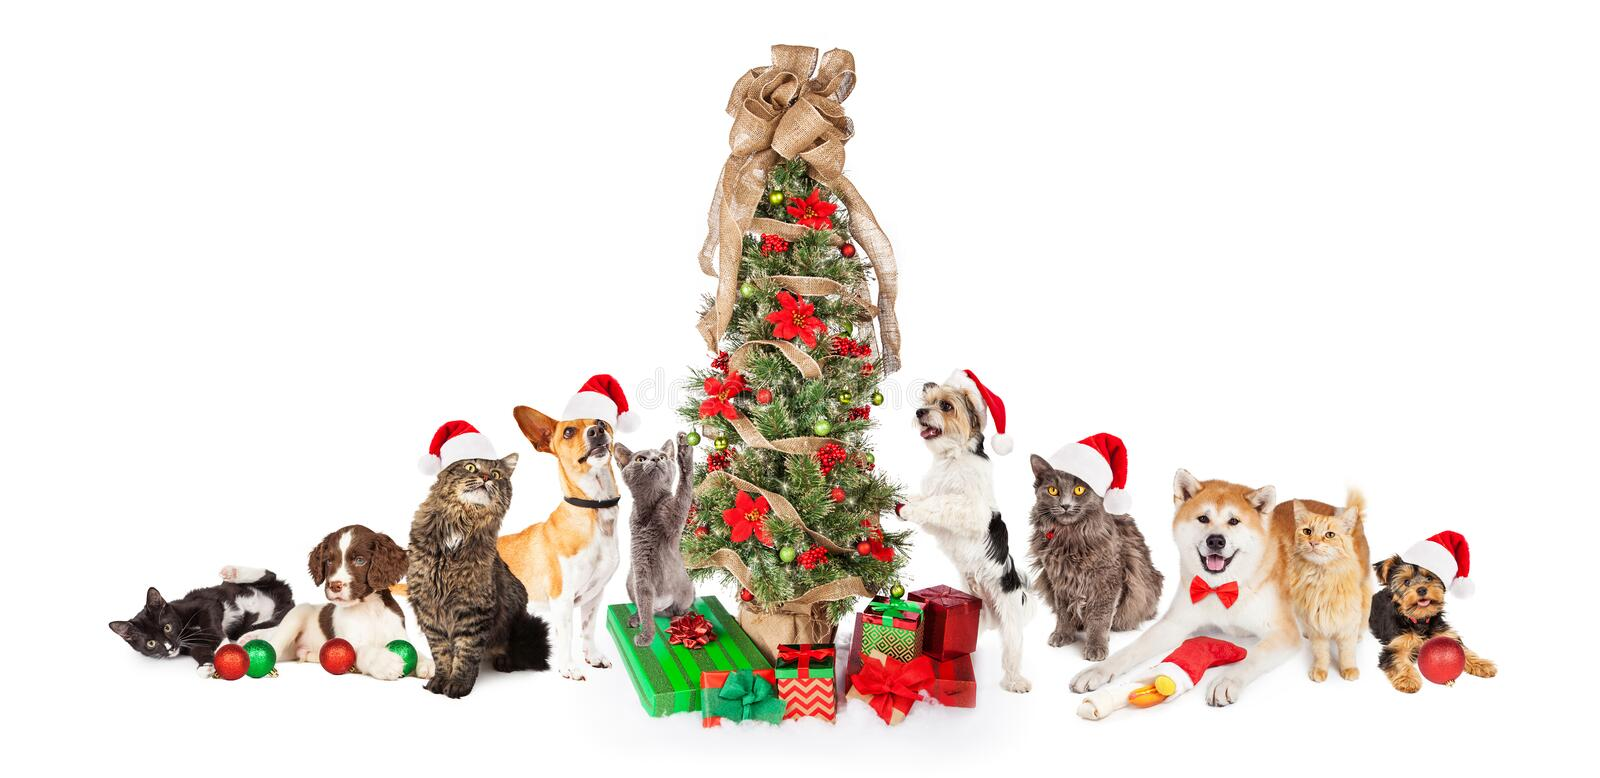 Group of Cats and Dogs Around Christmas Tree. Collection of cats and dogs in a row together around a Christmas tree with gifts royalty free stock images